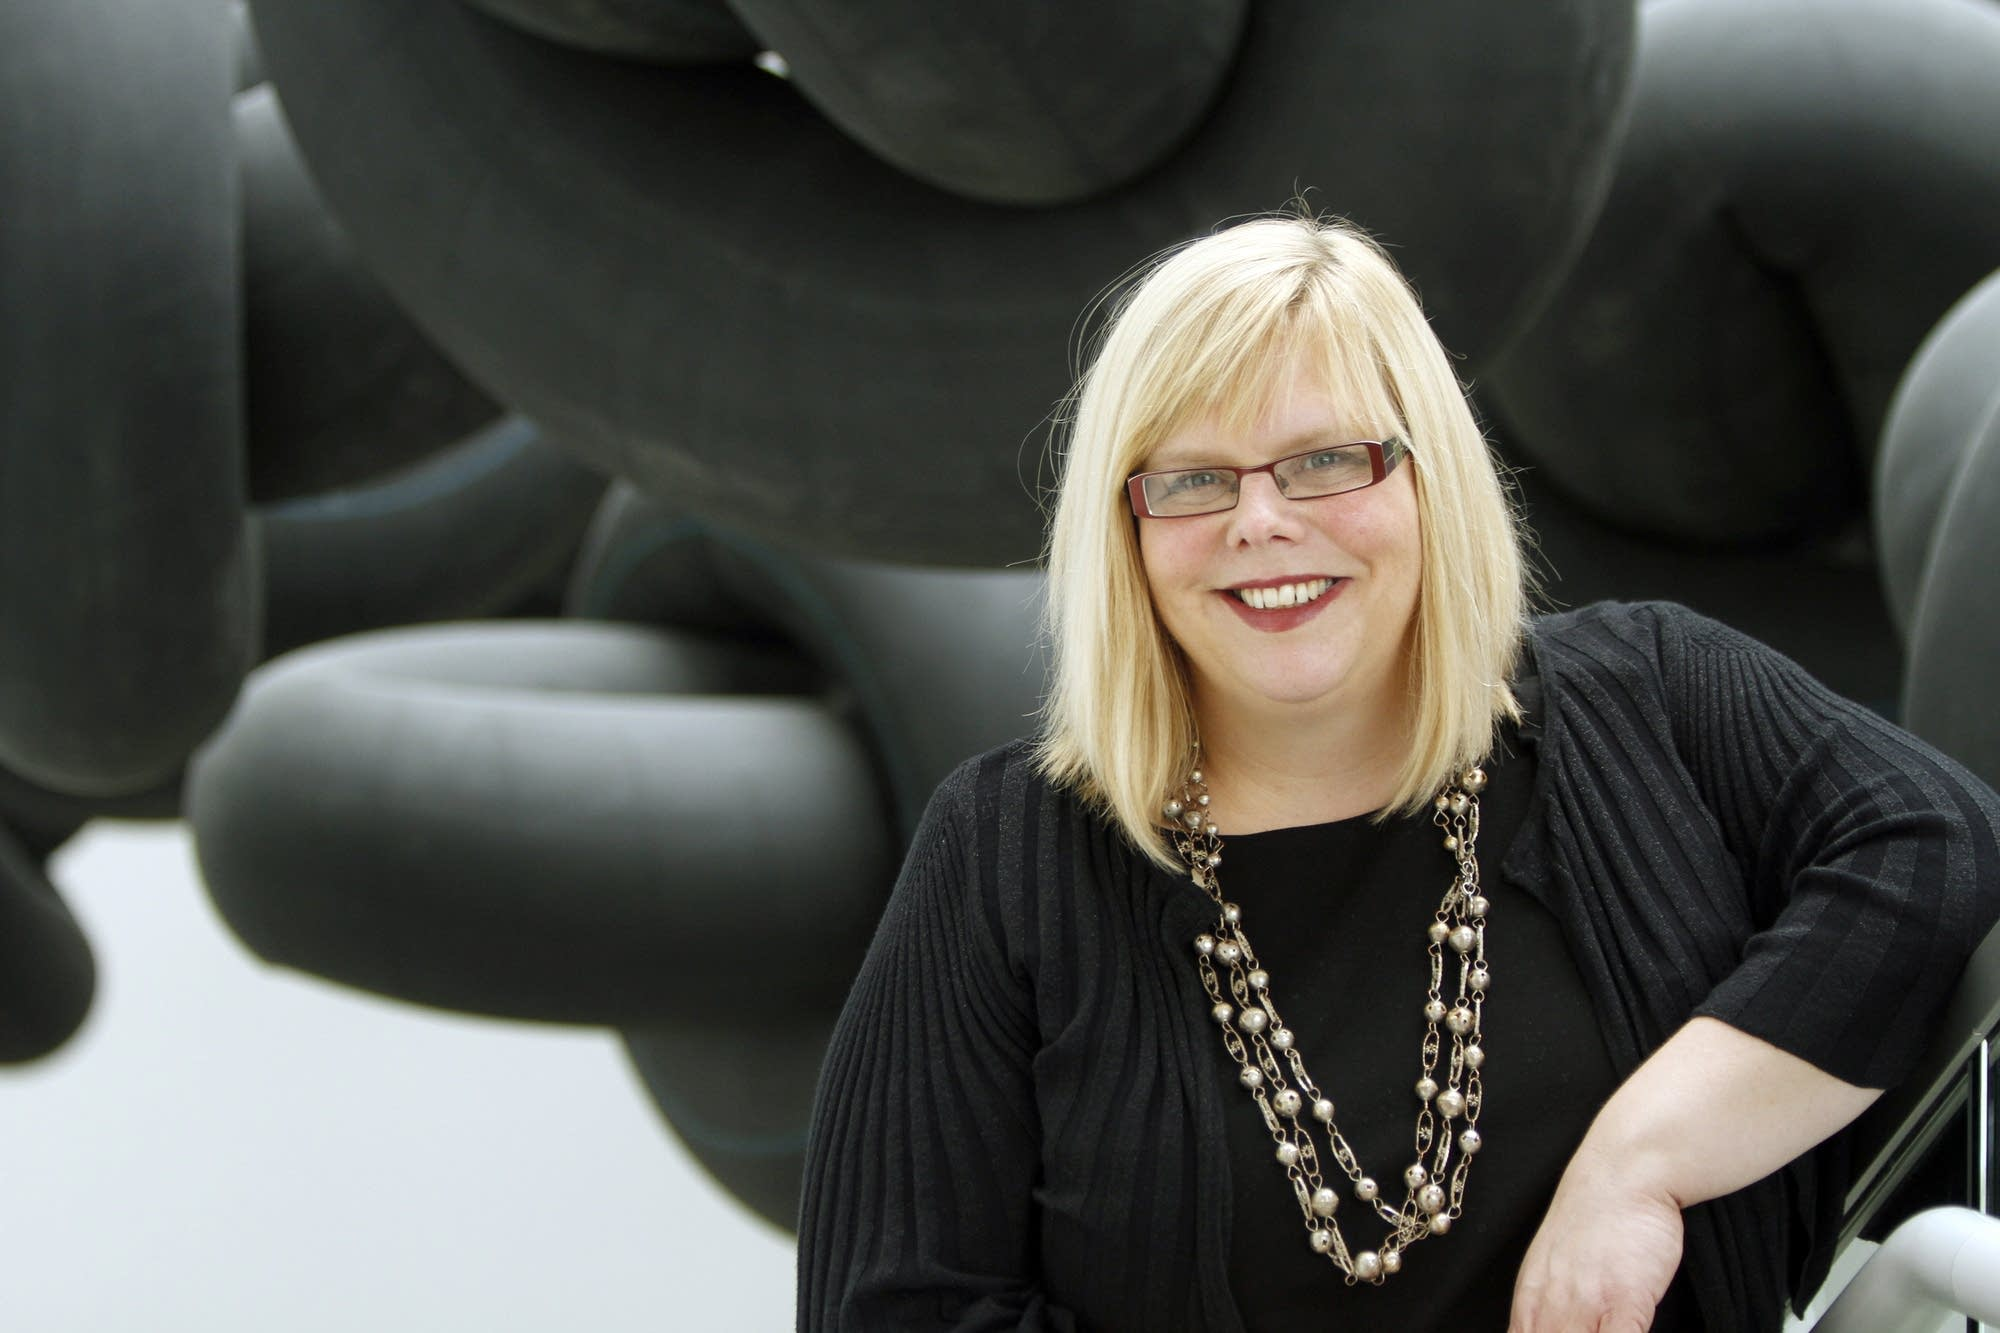 Megan Johnston, the former Rochester Art Center director